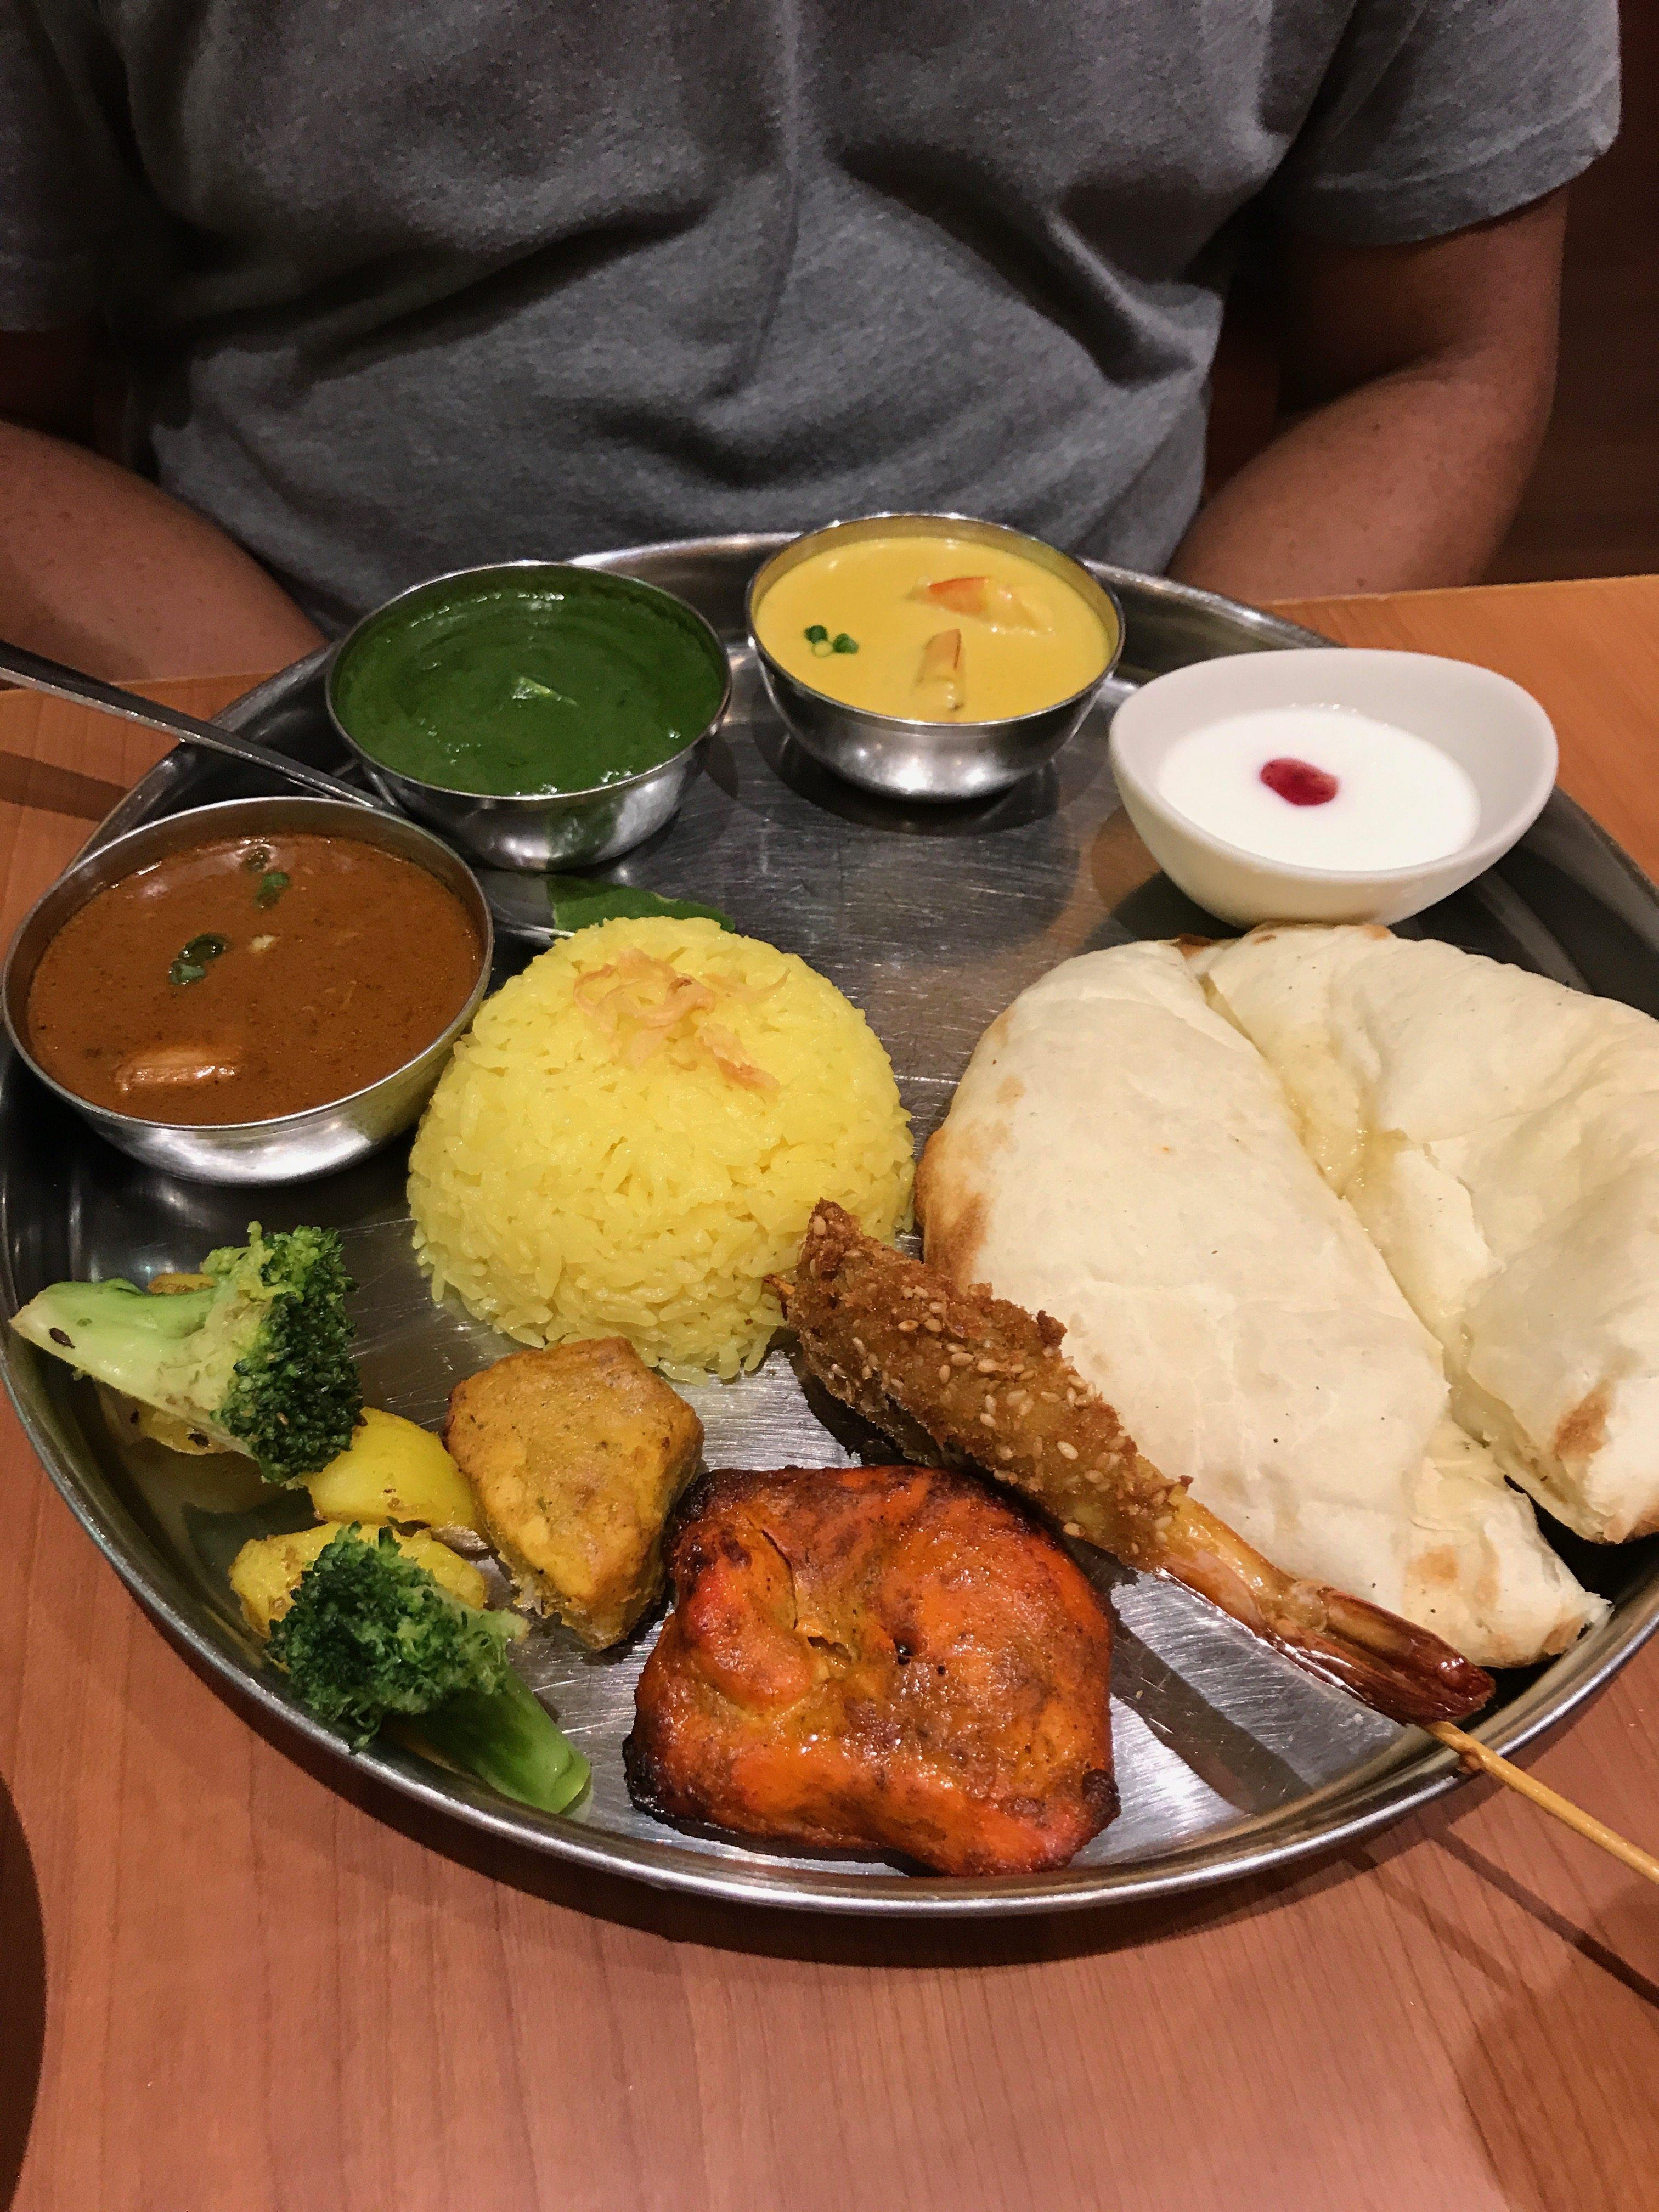 Eating Food In Japan - Trying Different Food In Japan - Tokyo Skytree Indian Restaurant